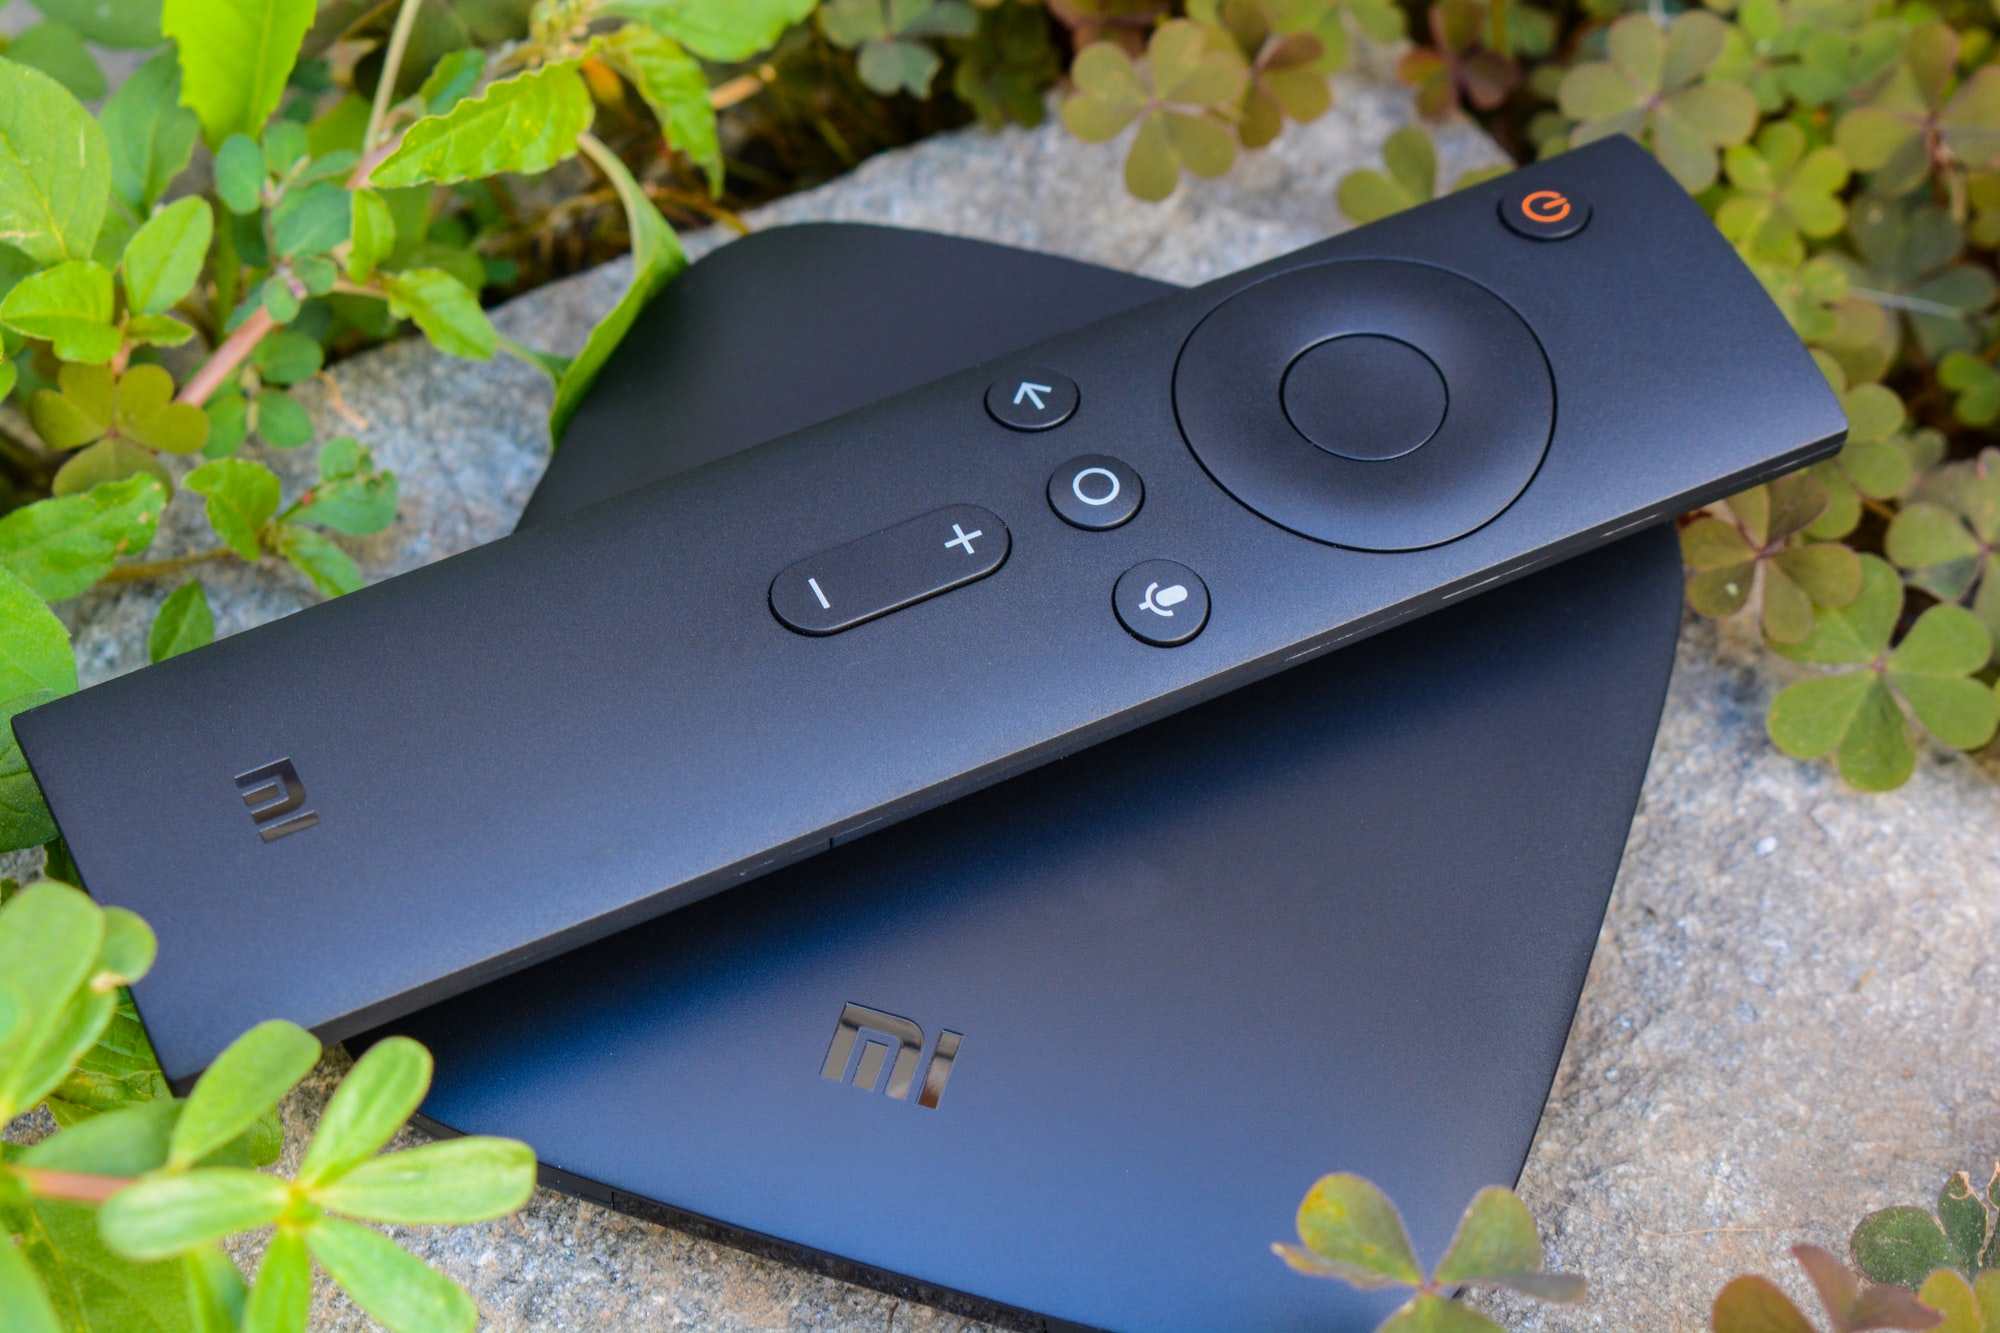 Xiaomi Mi TV Box with Android operating system.